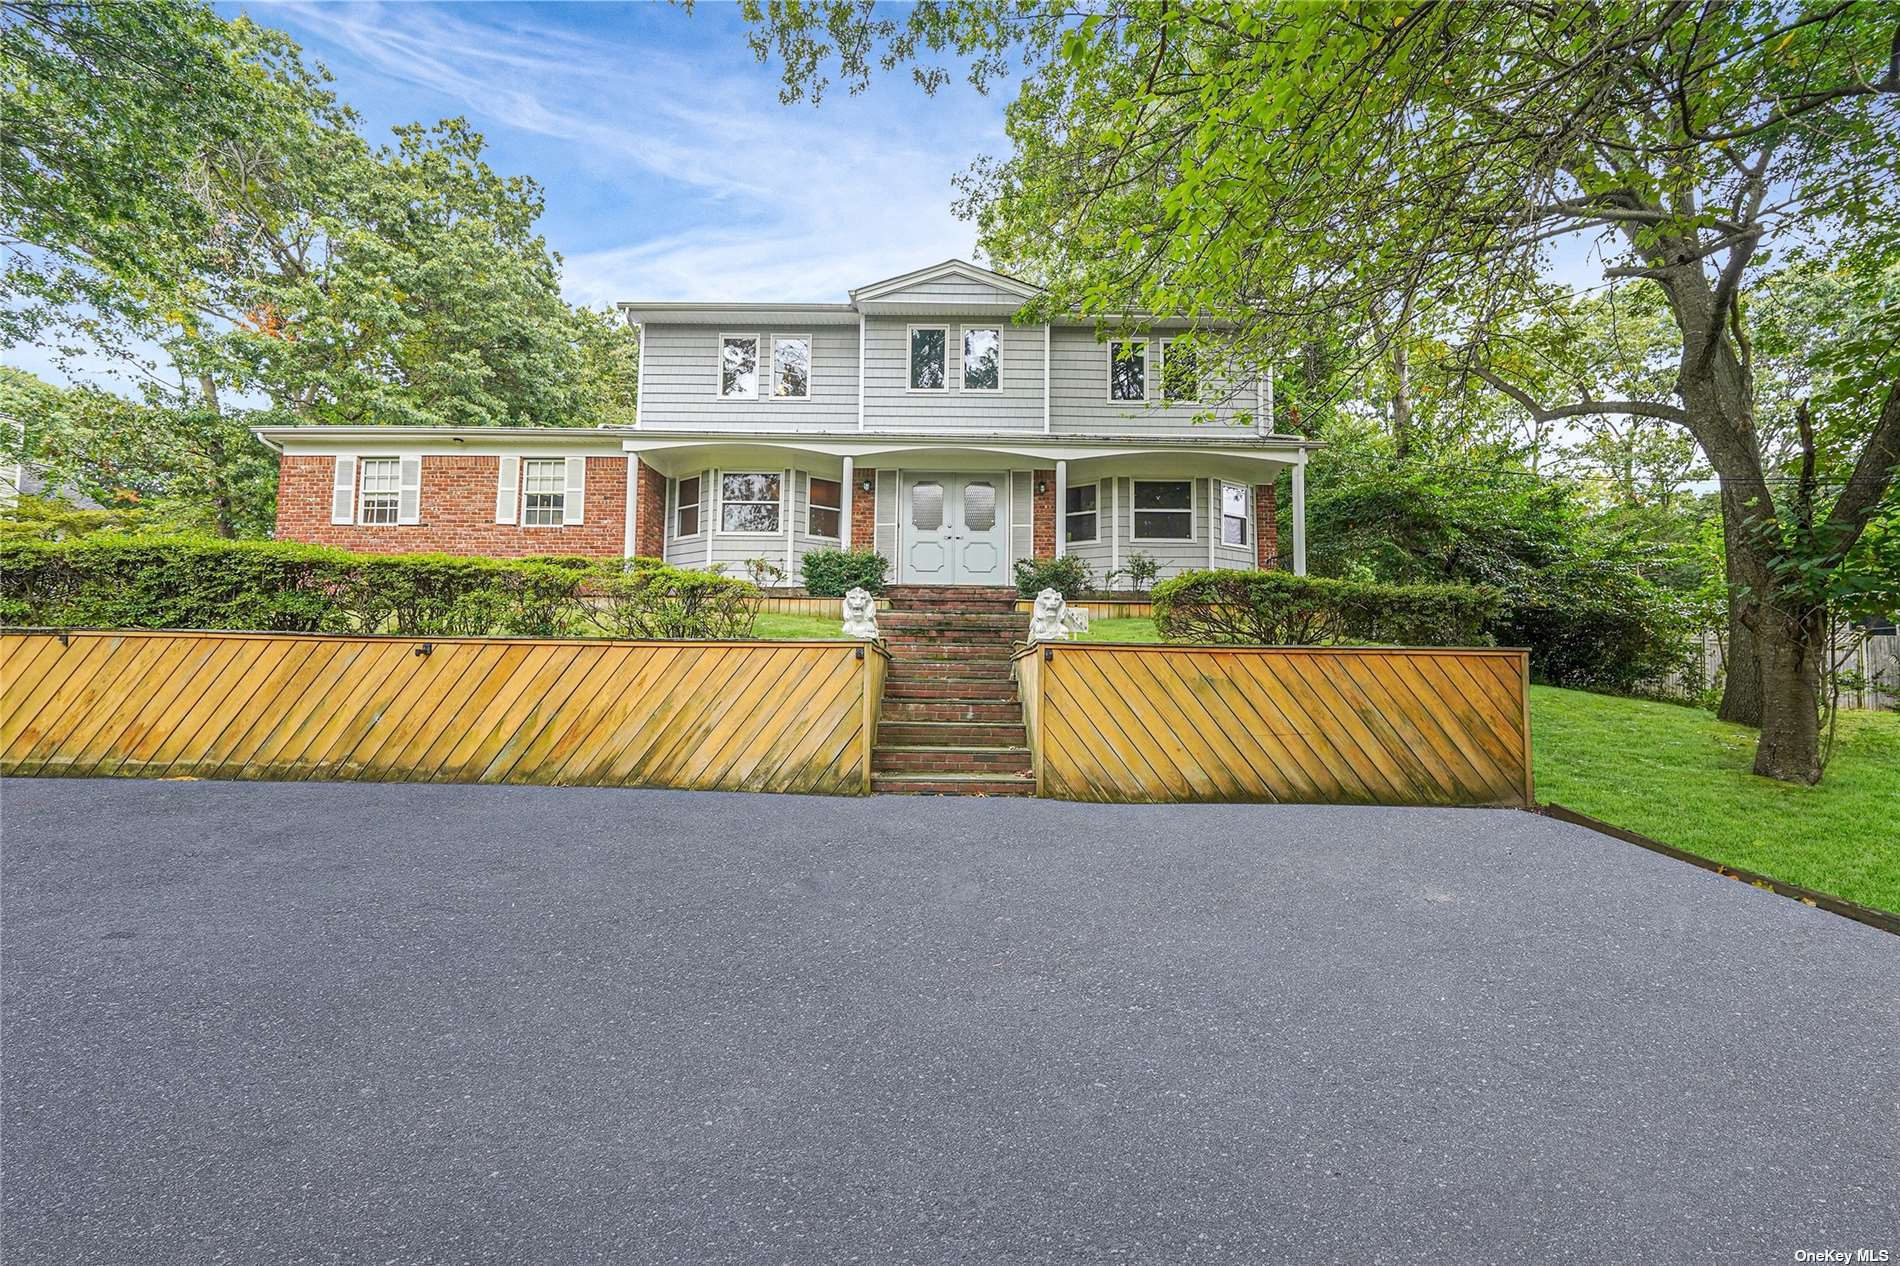 Beautiful Brick Front Colonial Located In Smithtown Pines! Nestled On 1.23 Acres. Complete with 4 Bedrooms, 2.5 Baths, Full Unfinished Basement + 2 Car Garage. Boasting Nearly 3,000 Sq Ft. Featuring An Open Floor Plan, Hardwood Floors, Renovated Bathrooms, Brand New Vinyl Siding, Hi-Hats, Freshly Painted + Plenty of Upgrades. Spacious Kitchen with Stainless Steel Vent & Appliances. All Spacious Bedrooms. Primary Suite Has Walk In Closets. Boiler & Hot Water Heater Only 2 Years Young, Sub Panel For Generator, Central Vac, Whole House Fan. Hauppauge Schools. Close Proximity To Blydenburgh Park, Northern State Parkway, Sunken Meadow Parkway, Long Island Expressway, Route 25A & All Major Shops. This Home Truly Has It All!! Make An Appointment To See All 45 Grandview Has To Offer!!